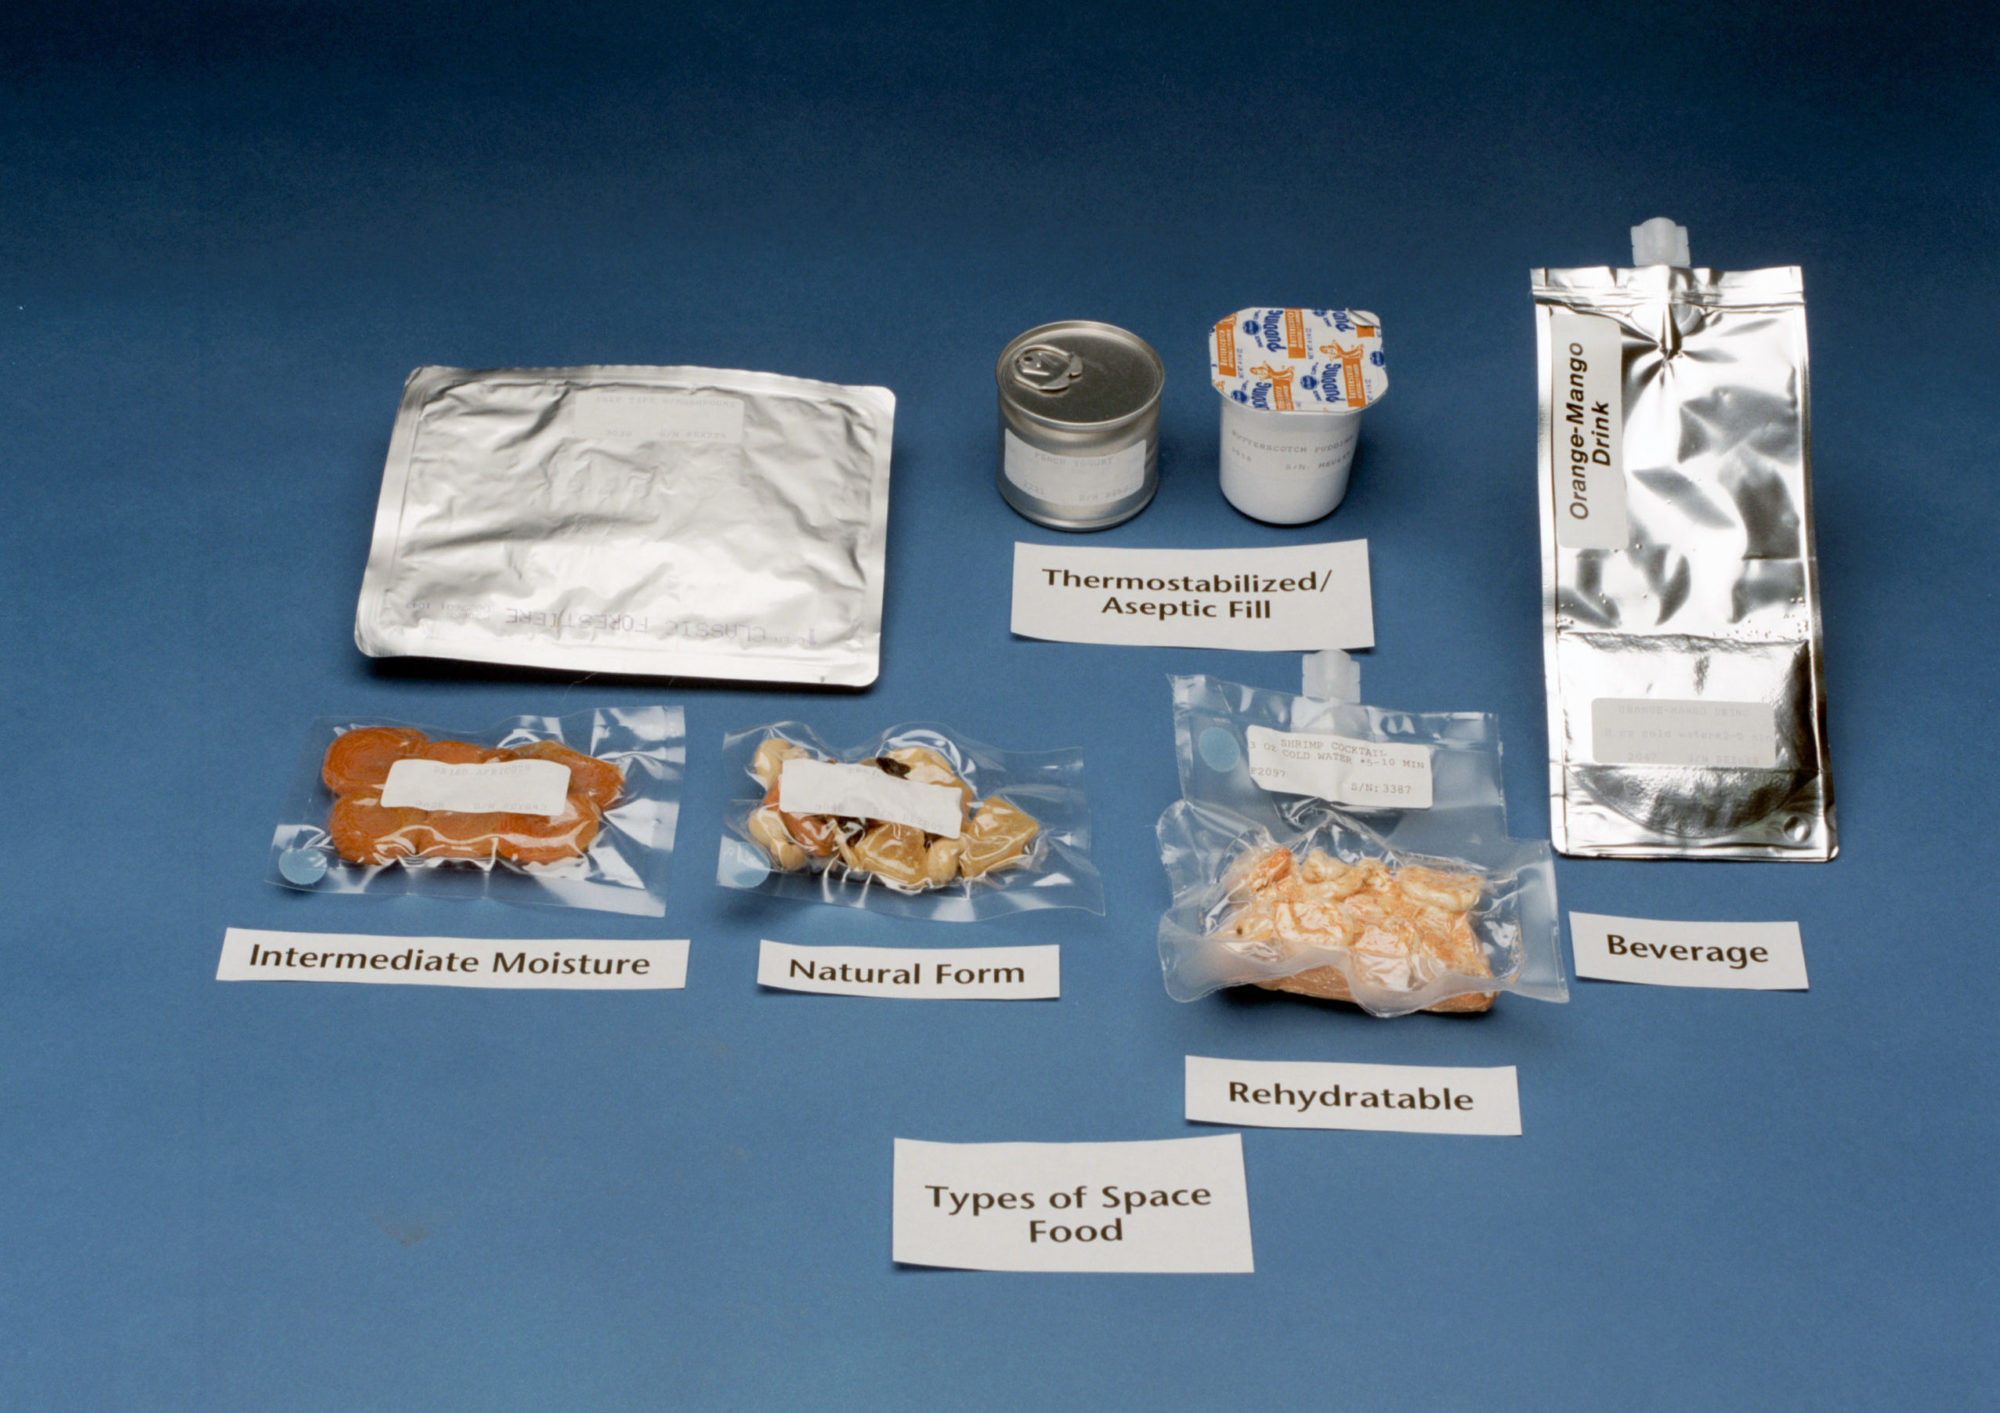 space_food_types_s93-32499